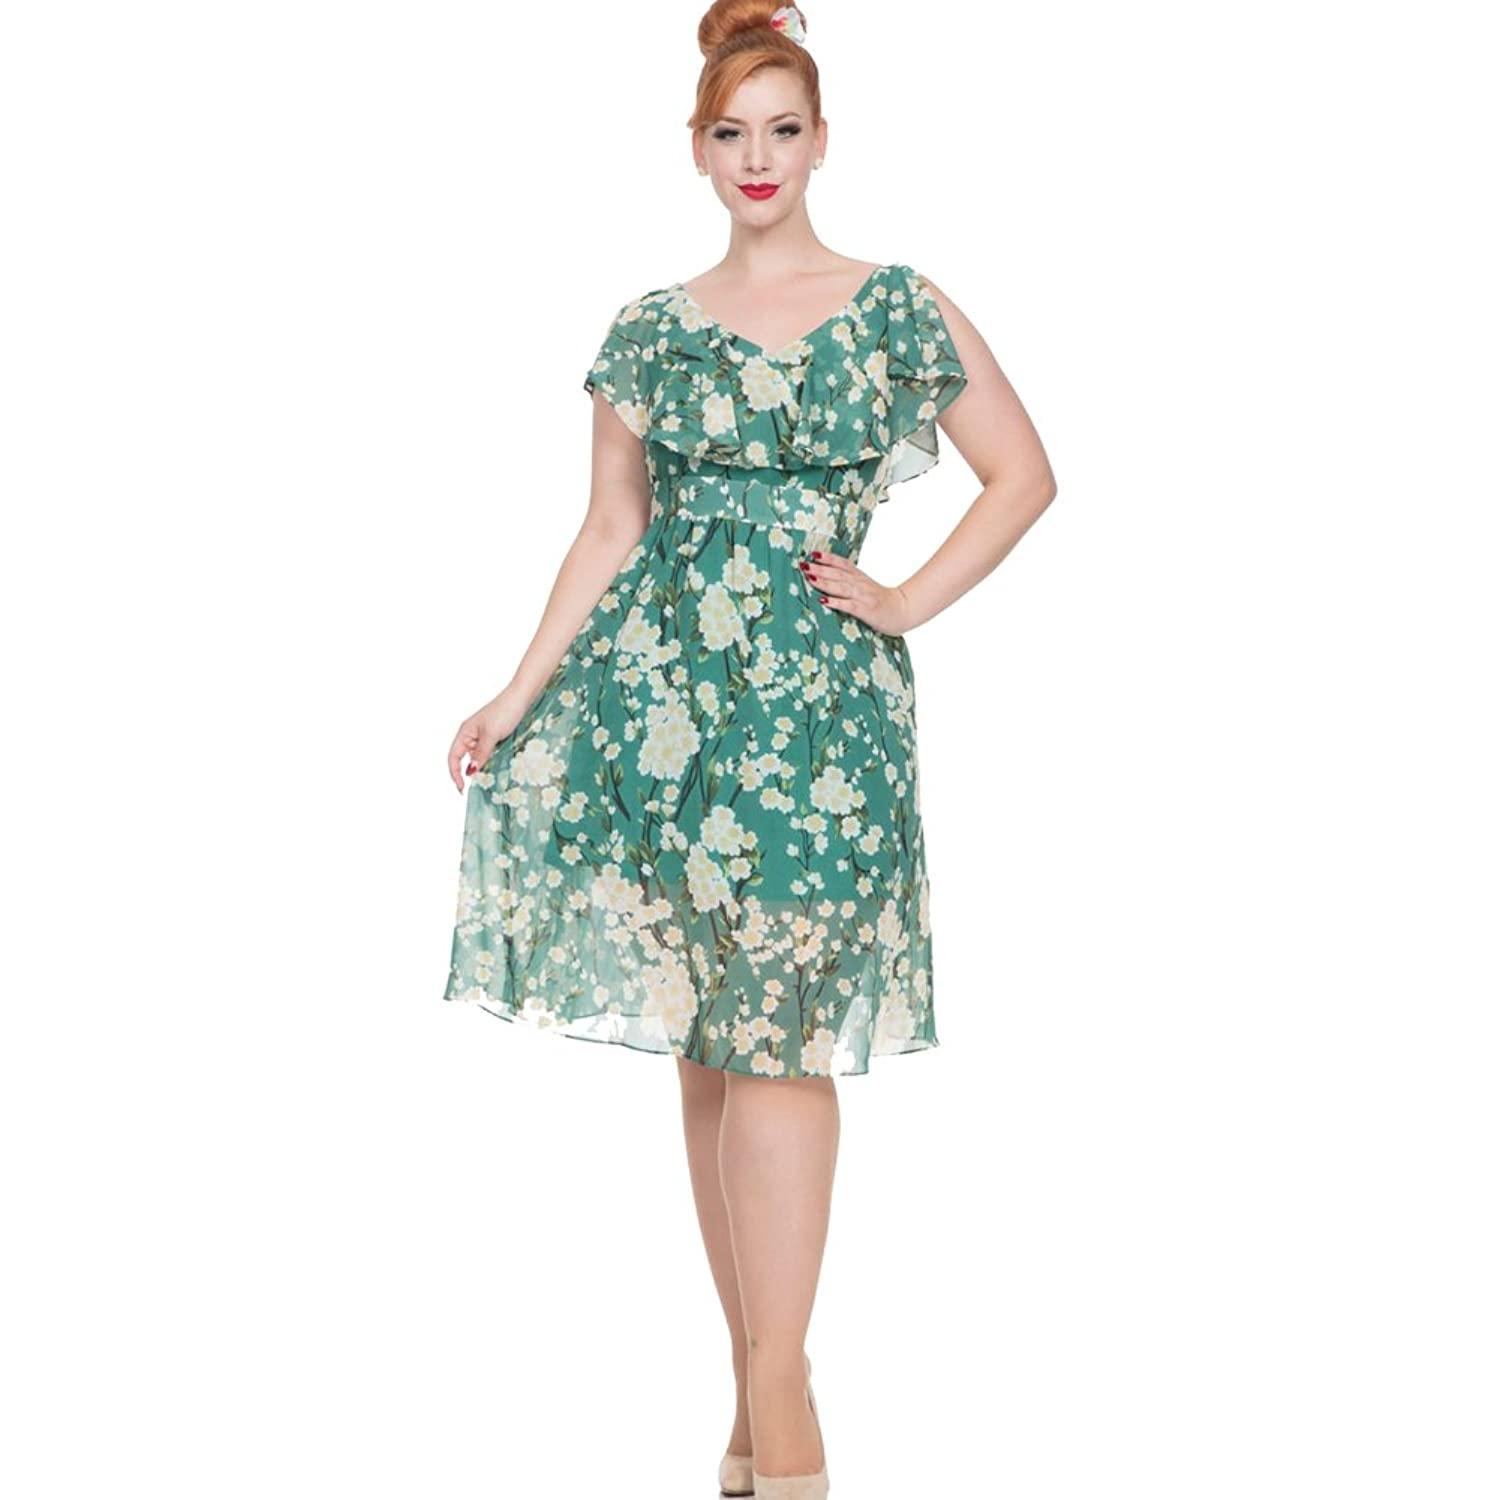 1930s Style Fashion Dresses Voodoo Vixen AGATHA Blossom Floral Chiffon Flare Dress Green.99 AT vintagedancer.com